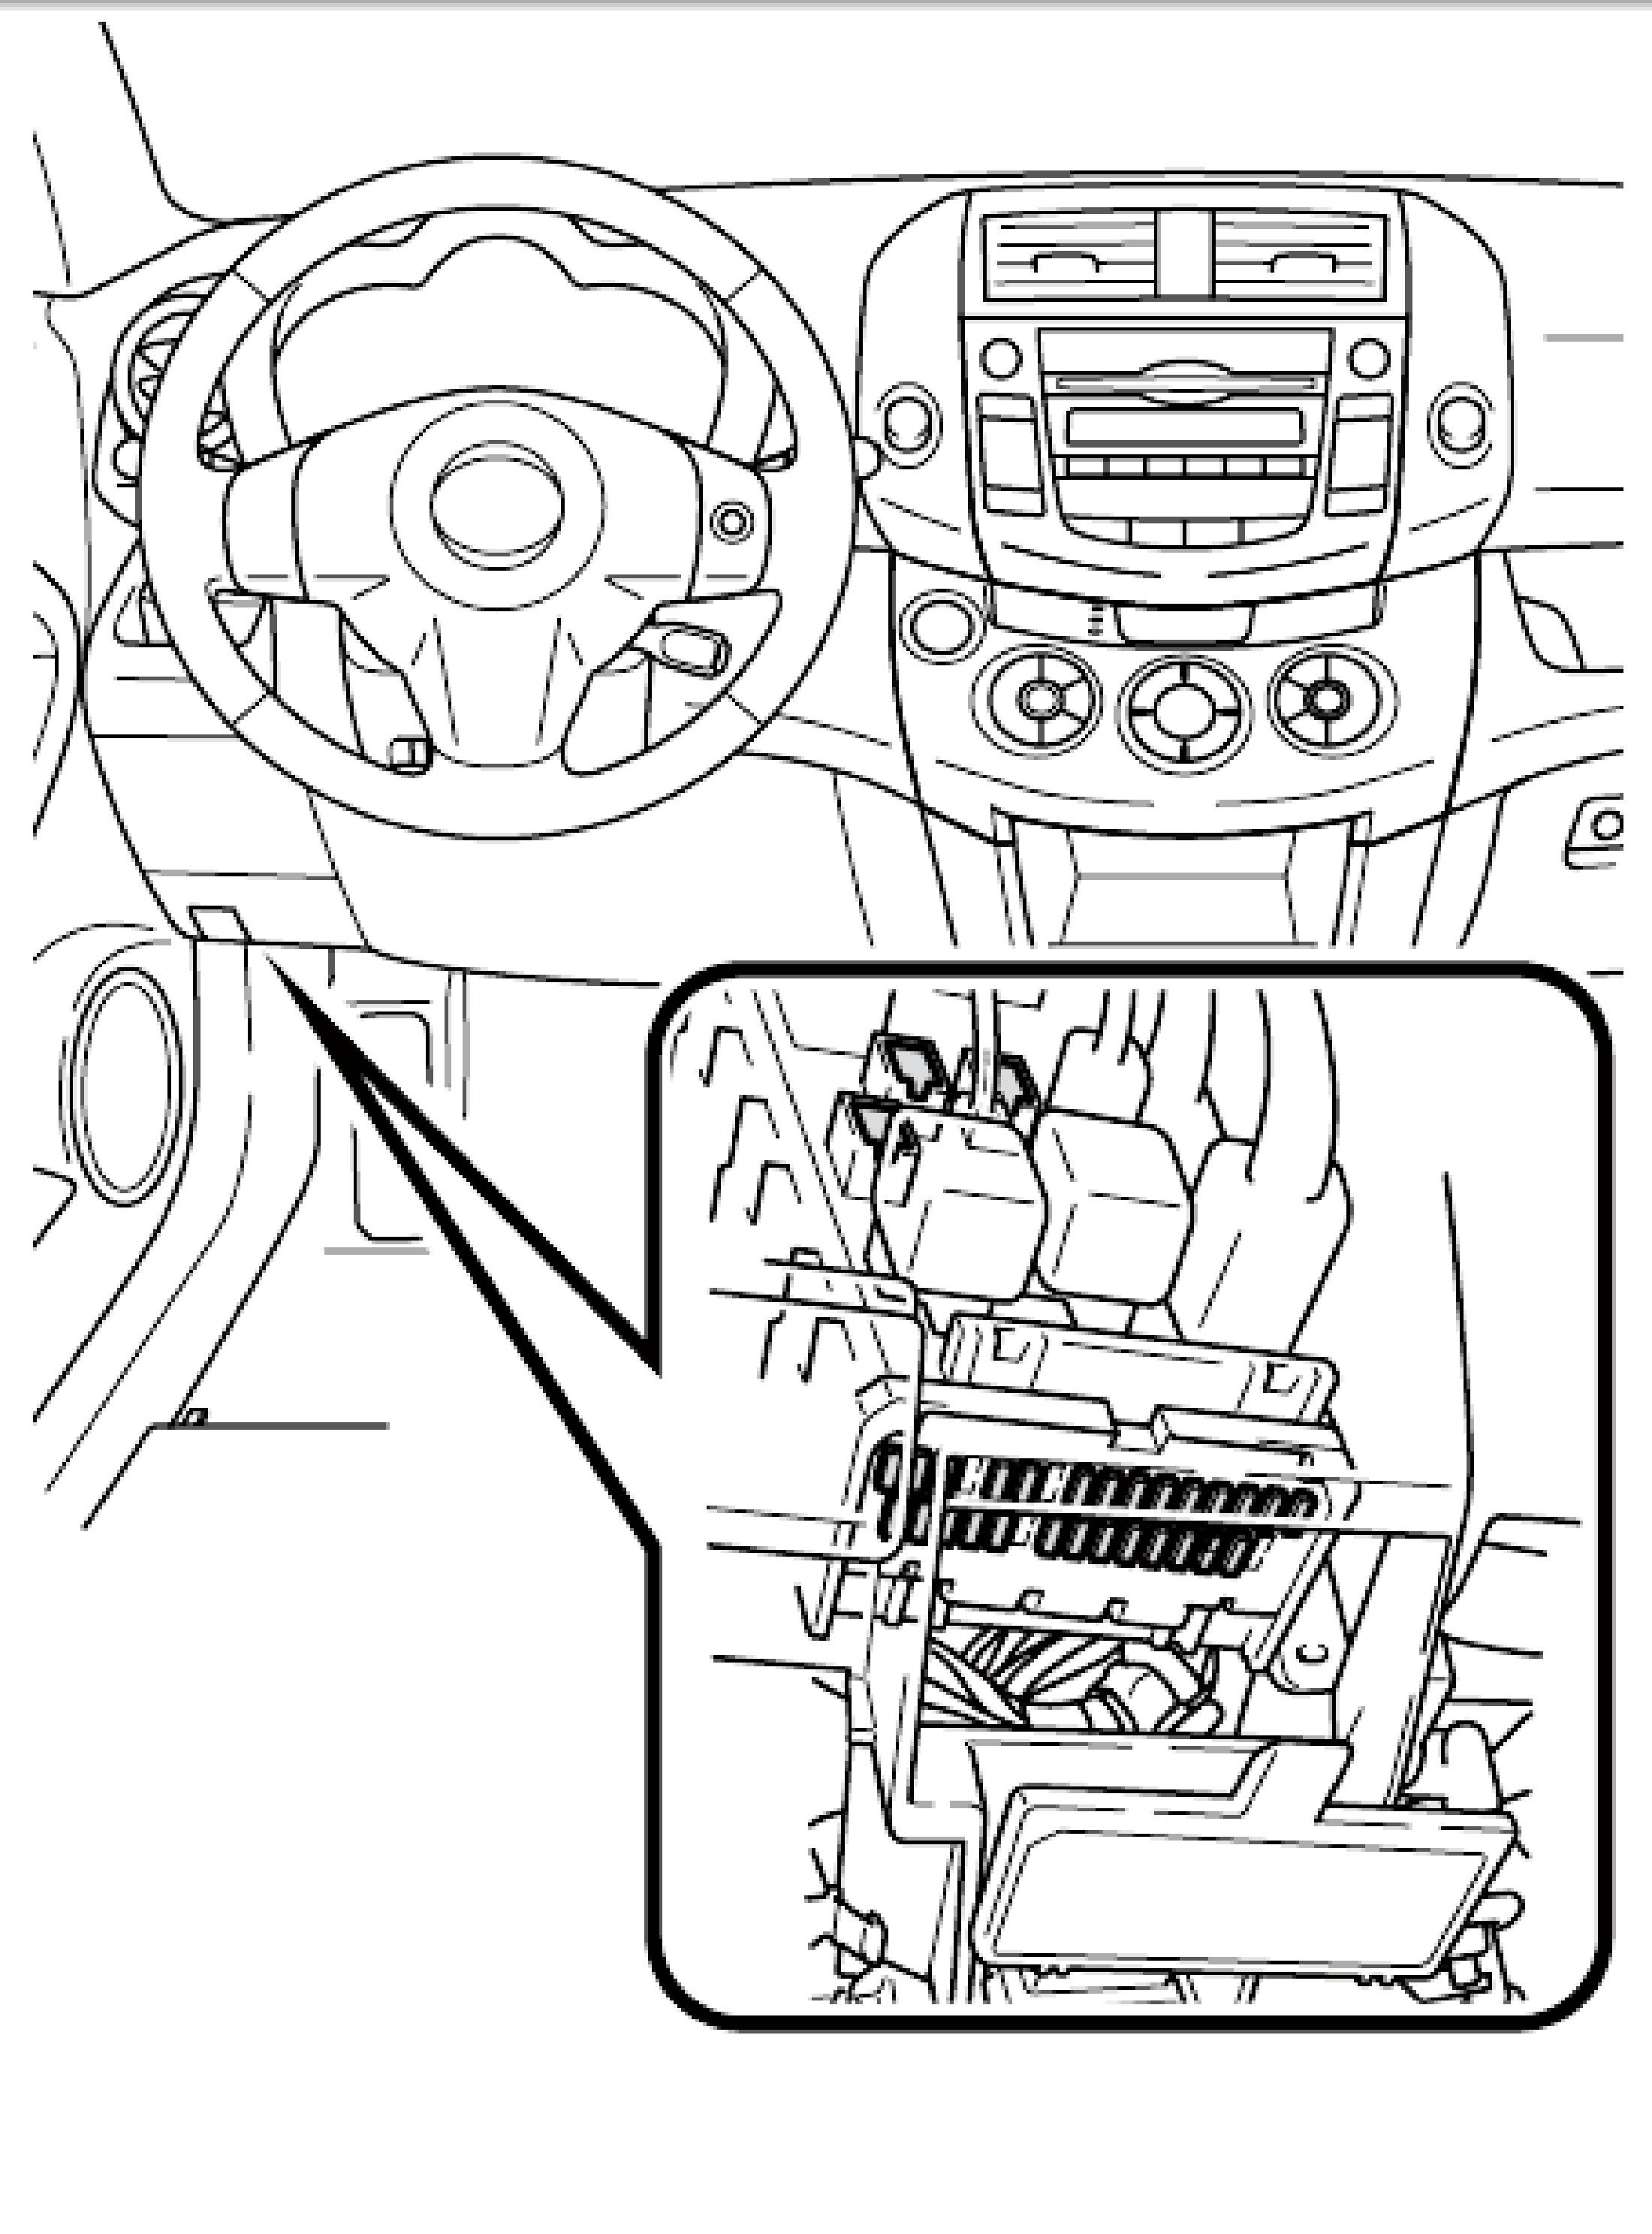 2002 Toyota Corolla Fuse Box Location Another Blog About Wiring 93 Diagram 37